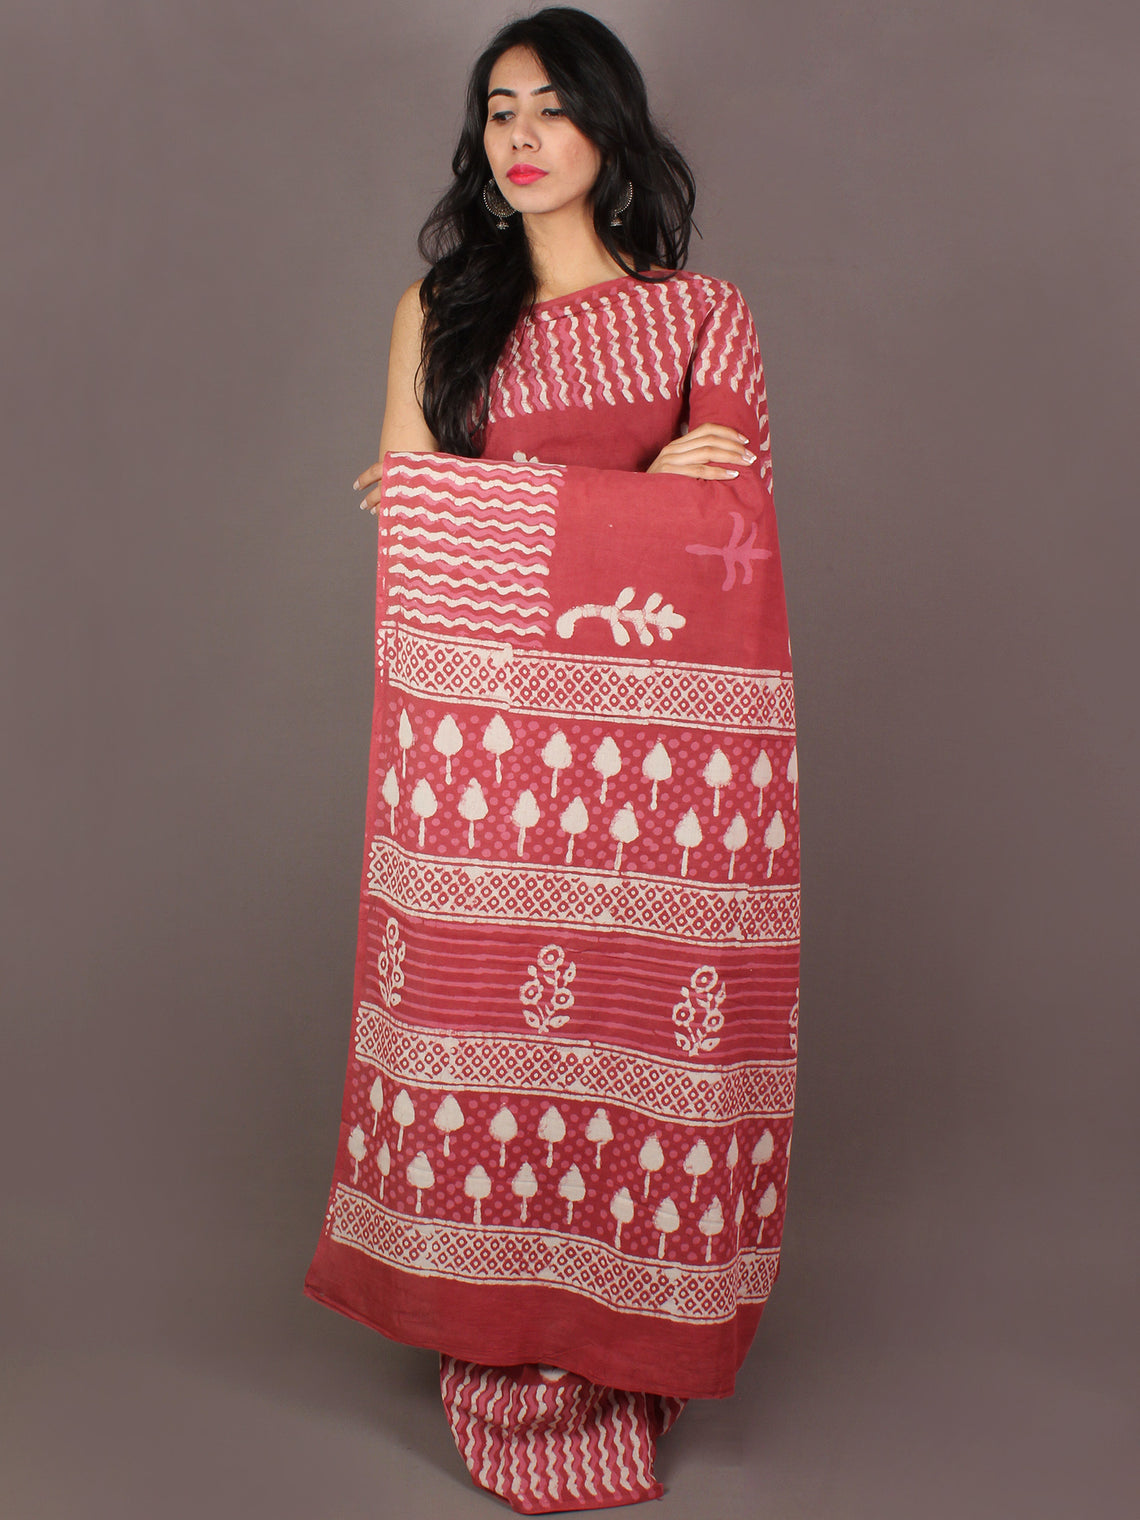 Vermilion Red White Hand Block Printed in Natural Colors Cotton Mul Saree - S031701012